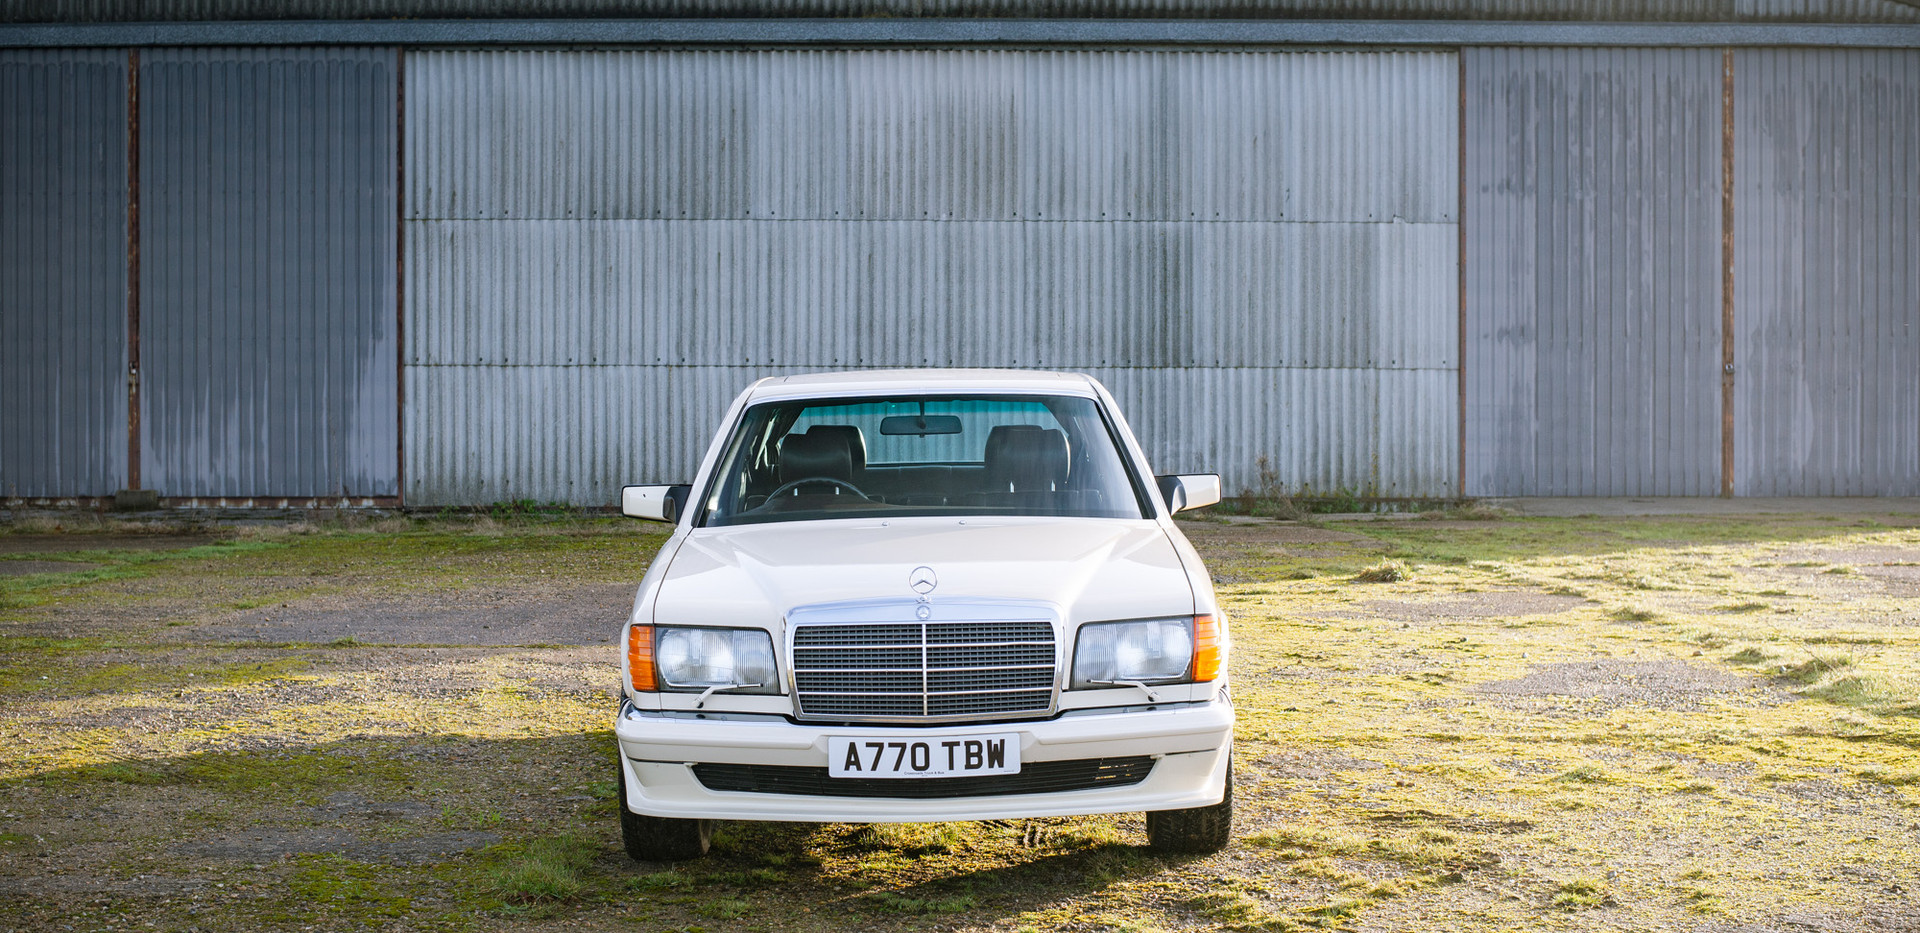 W126 Cream 500SEL for sale uk-2.jpg